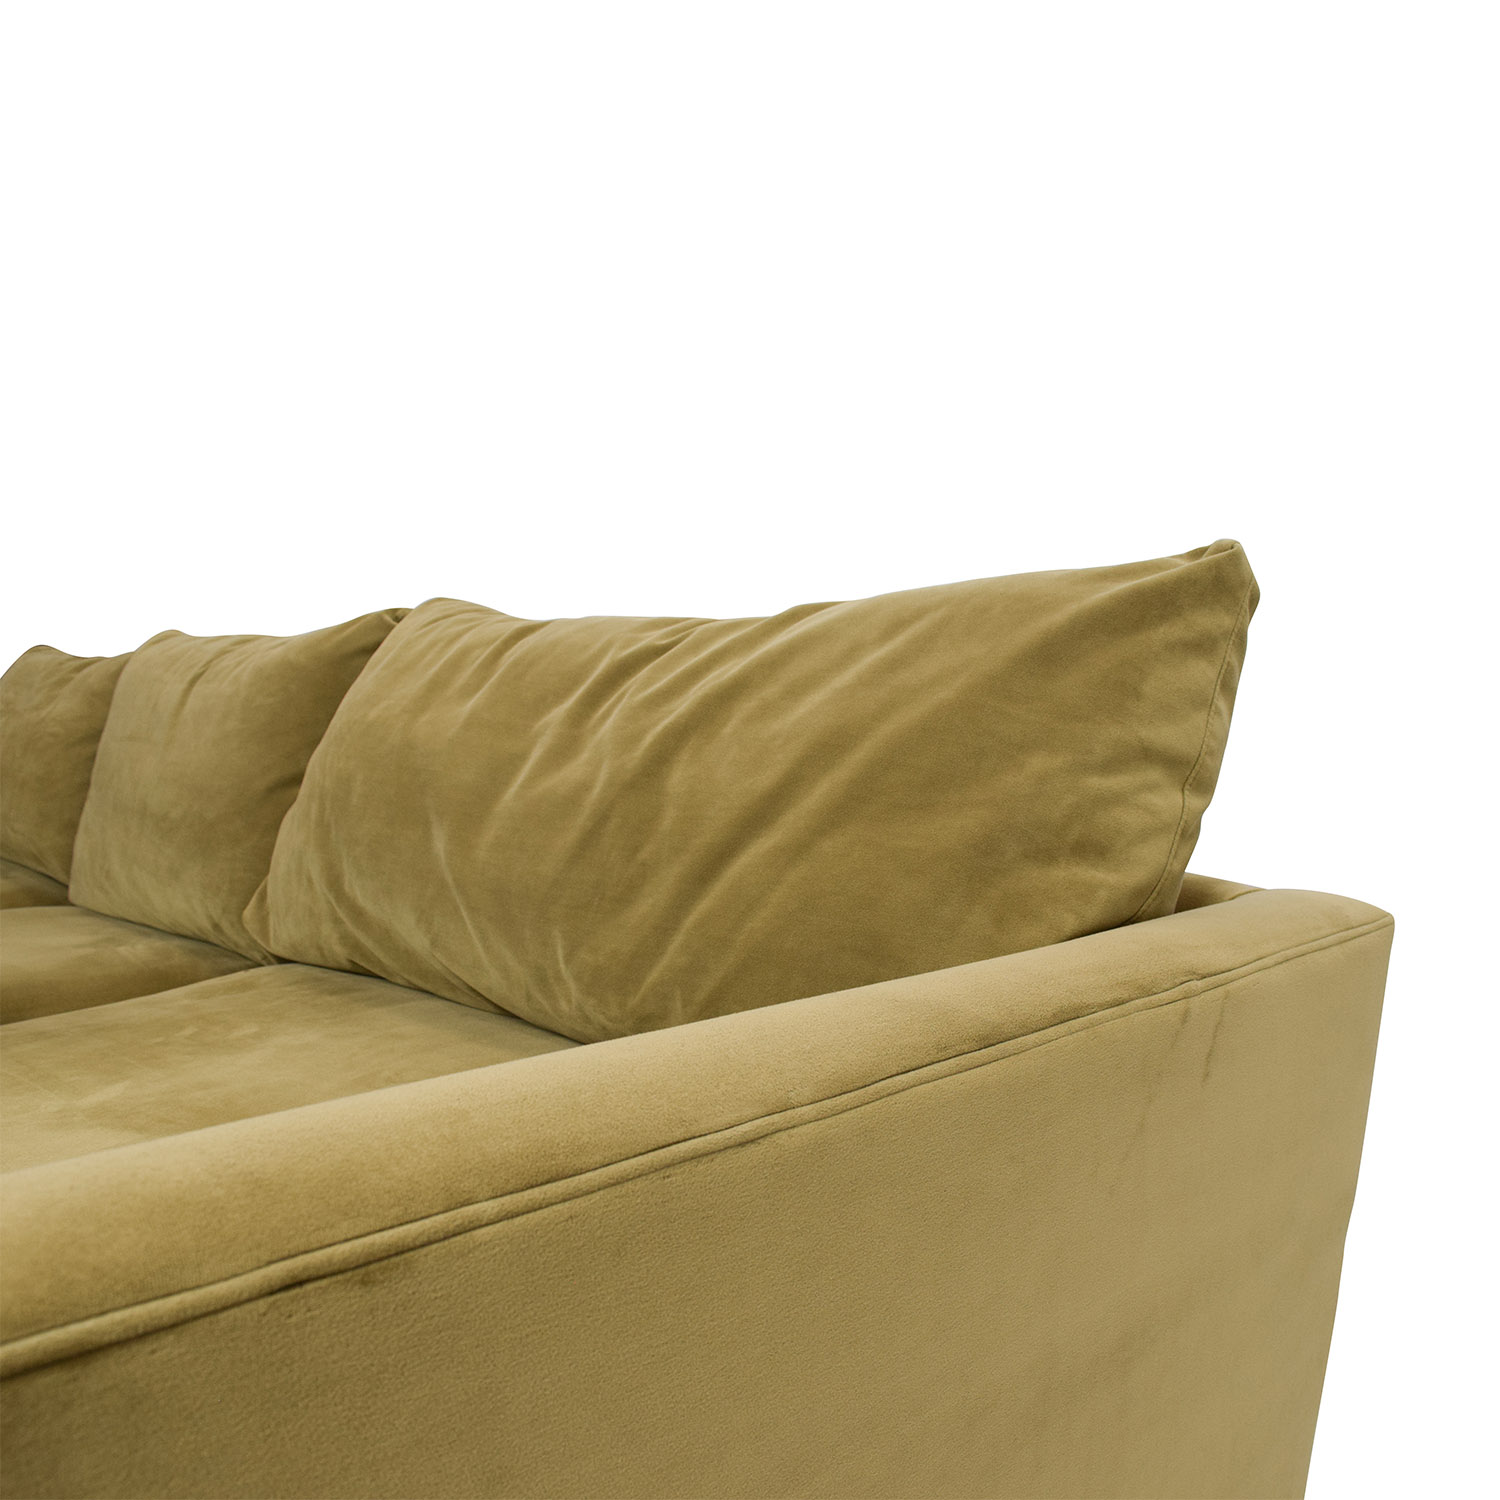 Crate & Barrel Furniture Reviews | Crate and Barrell Sofas | Crate and Barrel Couch